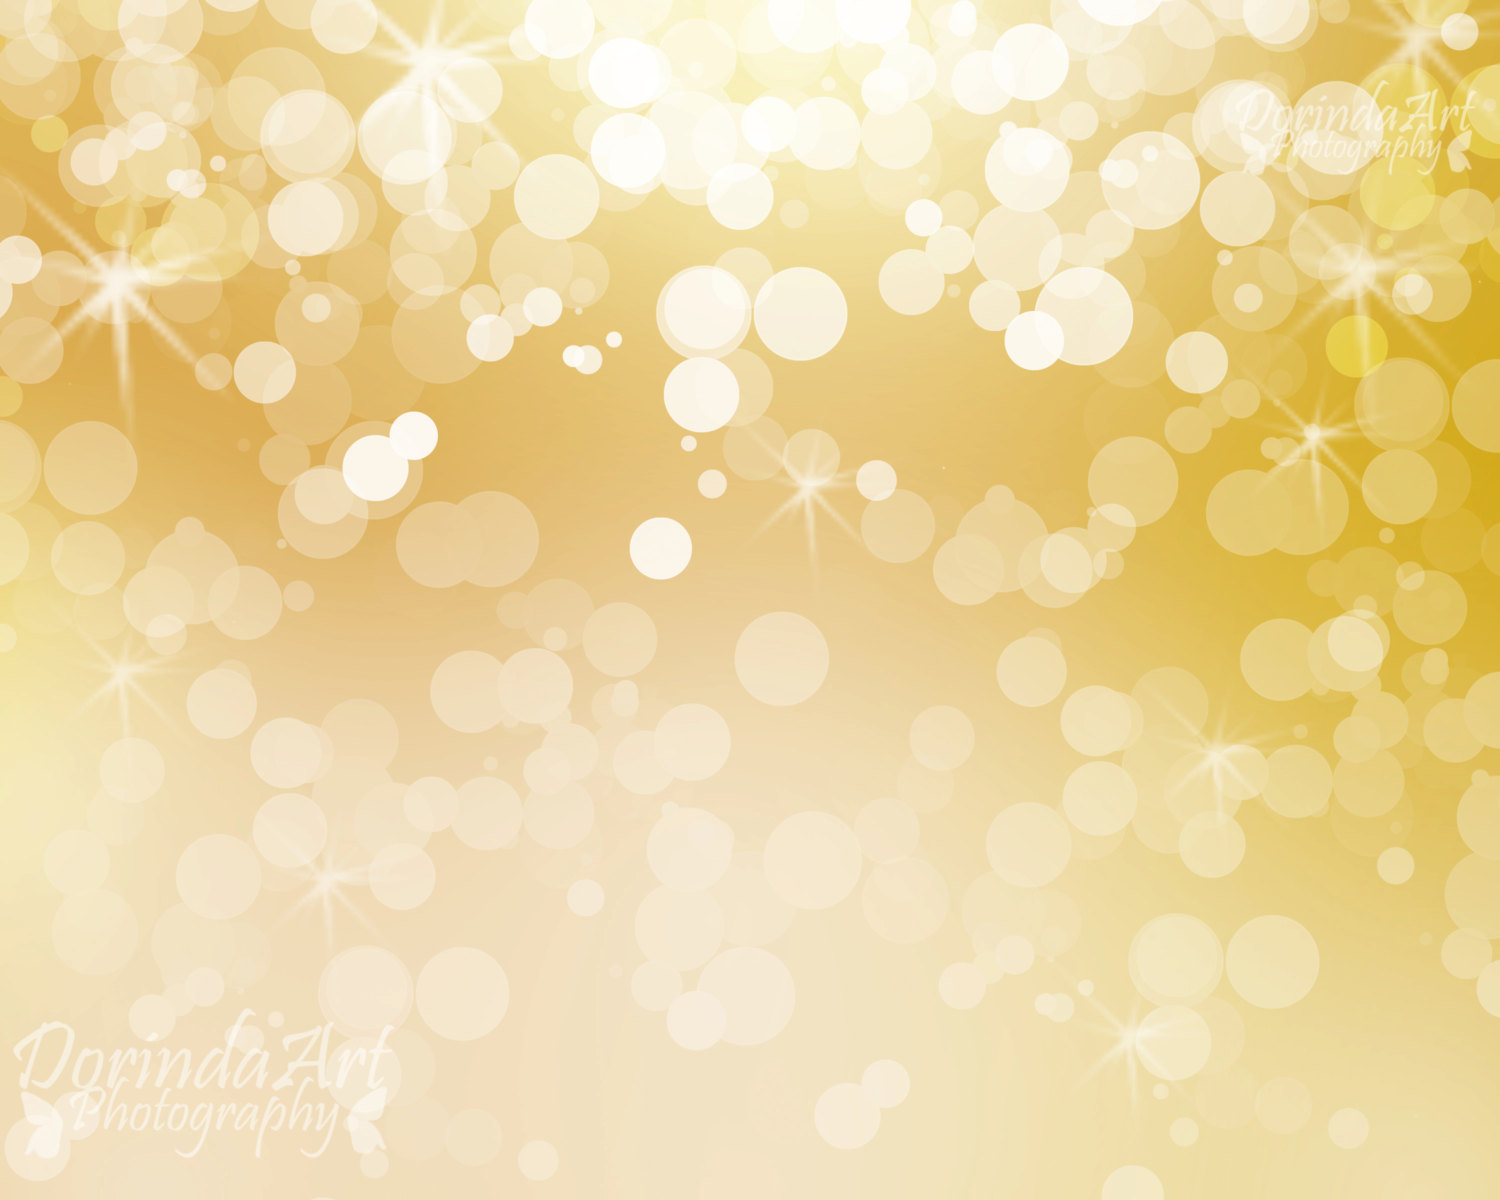 Royalty Free Stock Photos Abstract 3d Easter Egg Silver Gold Image23944058 as well 106670 Virtual Technology Vector Background together with 449 additionally Seamless Gold Heart Pattern 3 furthermore Color. on shiny gold background wallpaper